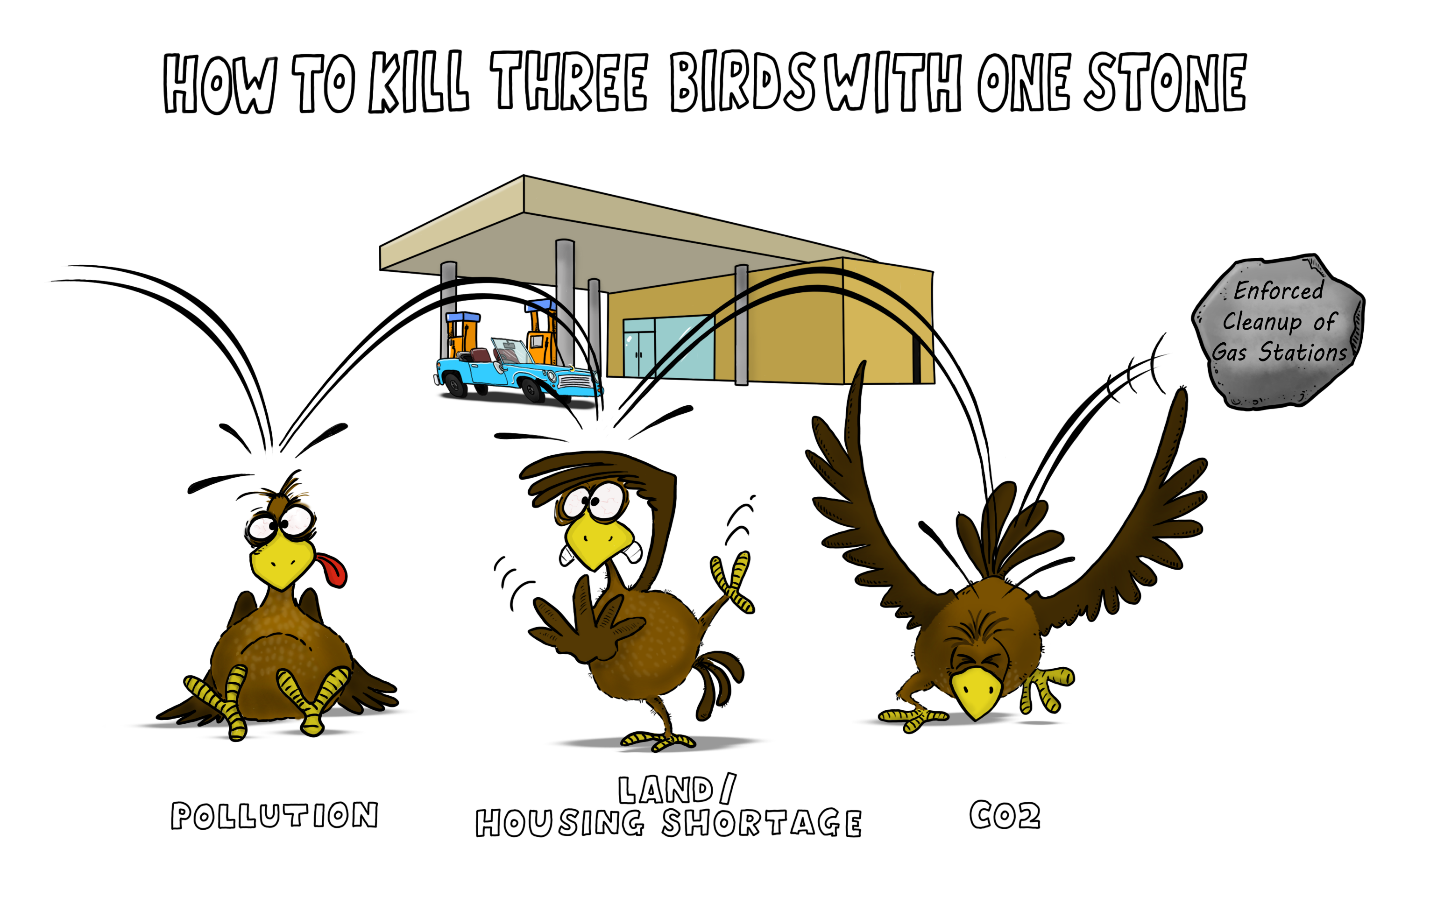 Enforced cleanup of gas stations would kill three birds--pollution, the urban land shortage, and carbon emissions--with one stone. (Cartoon by Dragan Milos/Matthew Metz)